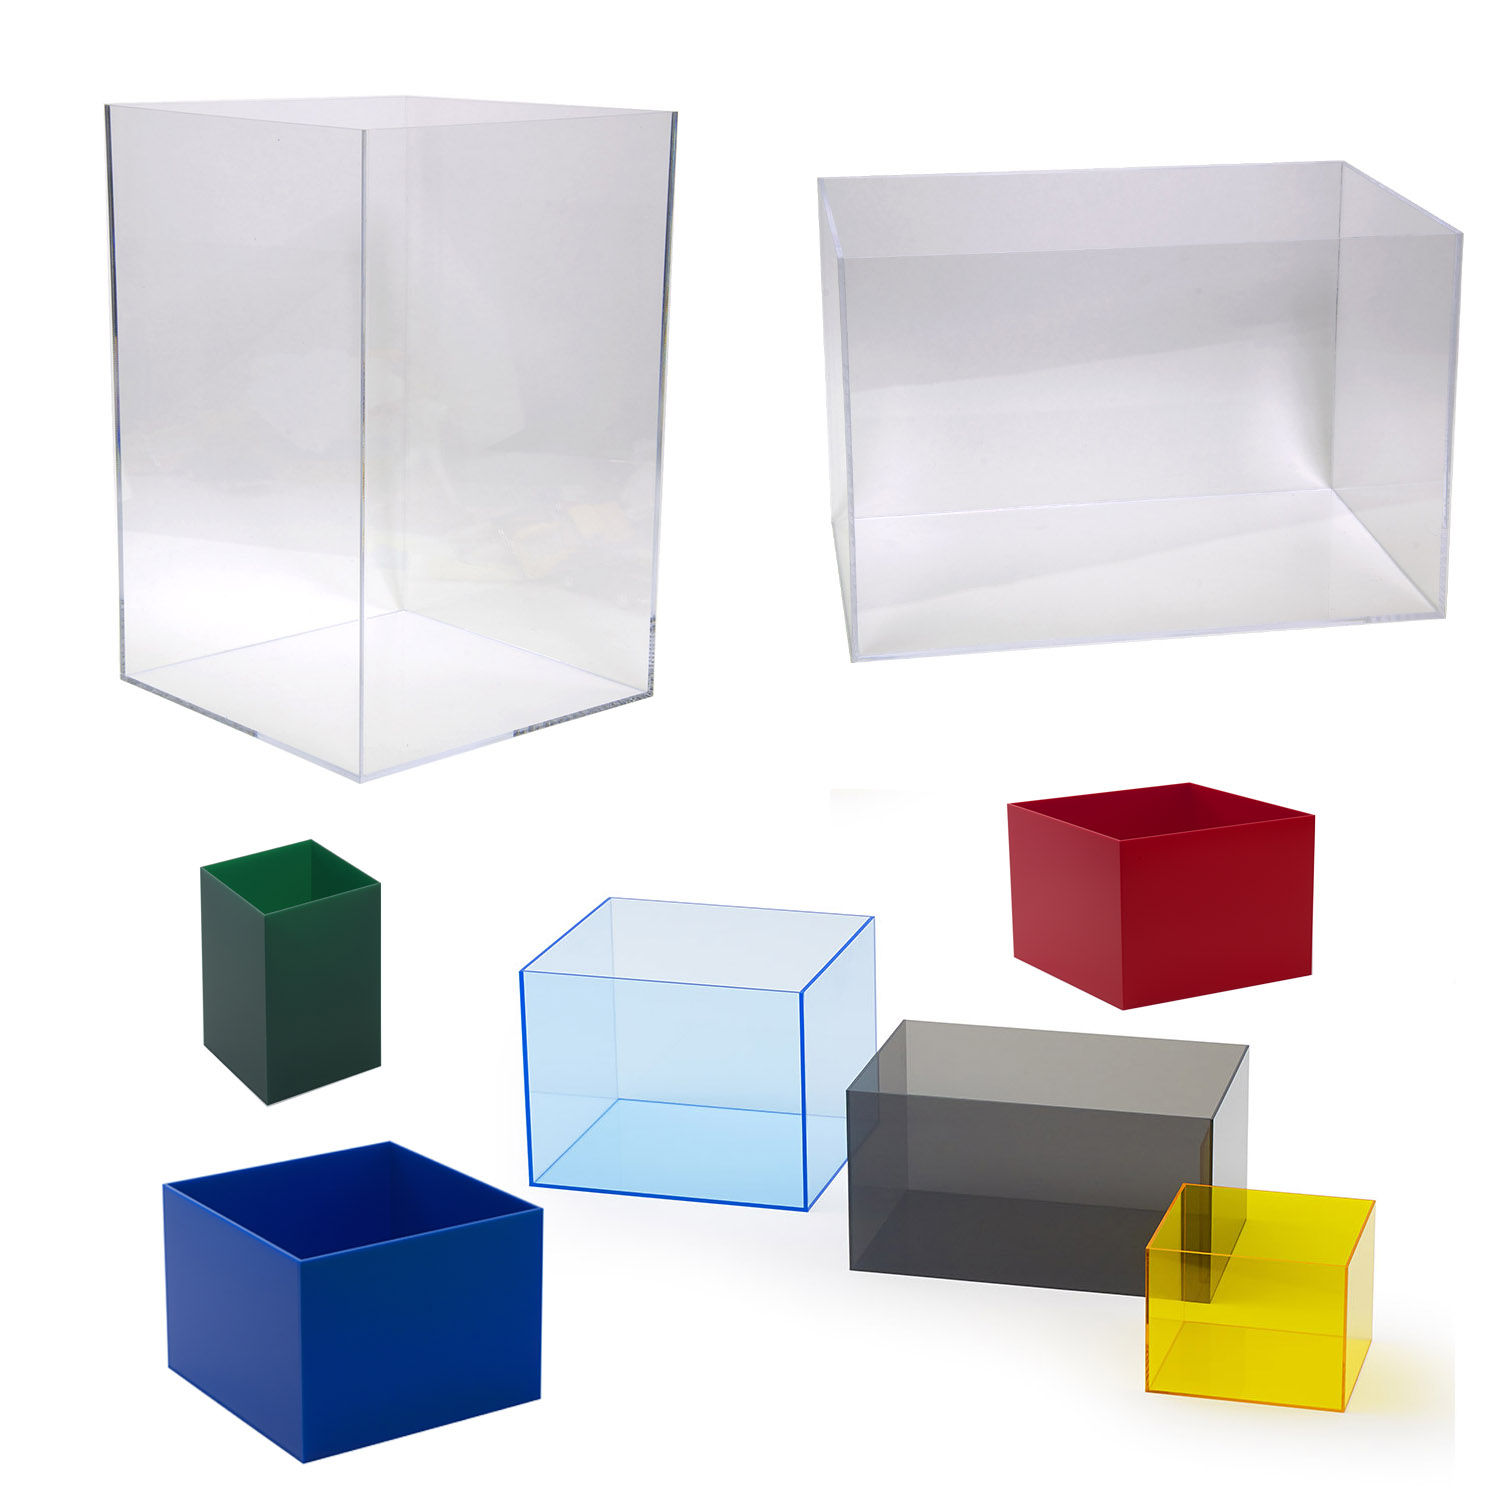 Acrylic Display Cases & Acrylic Display Boxes | Plastic Display Boxes